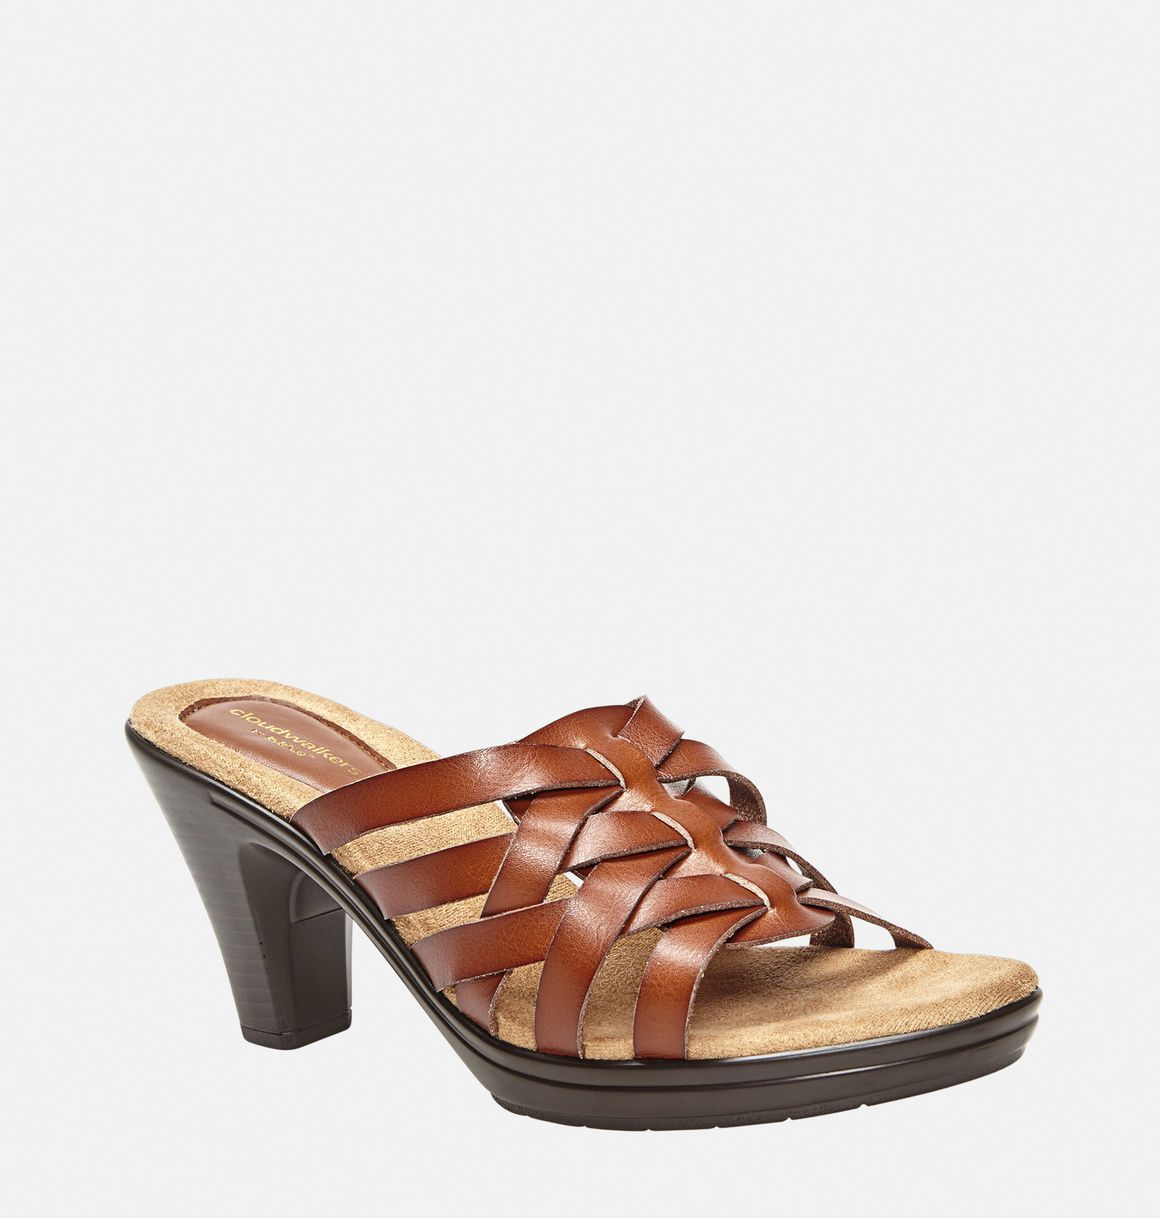 3c39d81f866 Shop comfortable new wide width slides like the Suri Woven Sandal in sizes  7-13 available online at avenue.com. Avenue Store